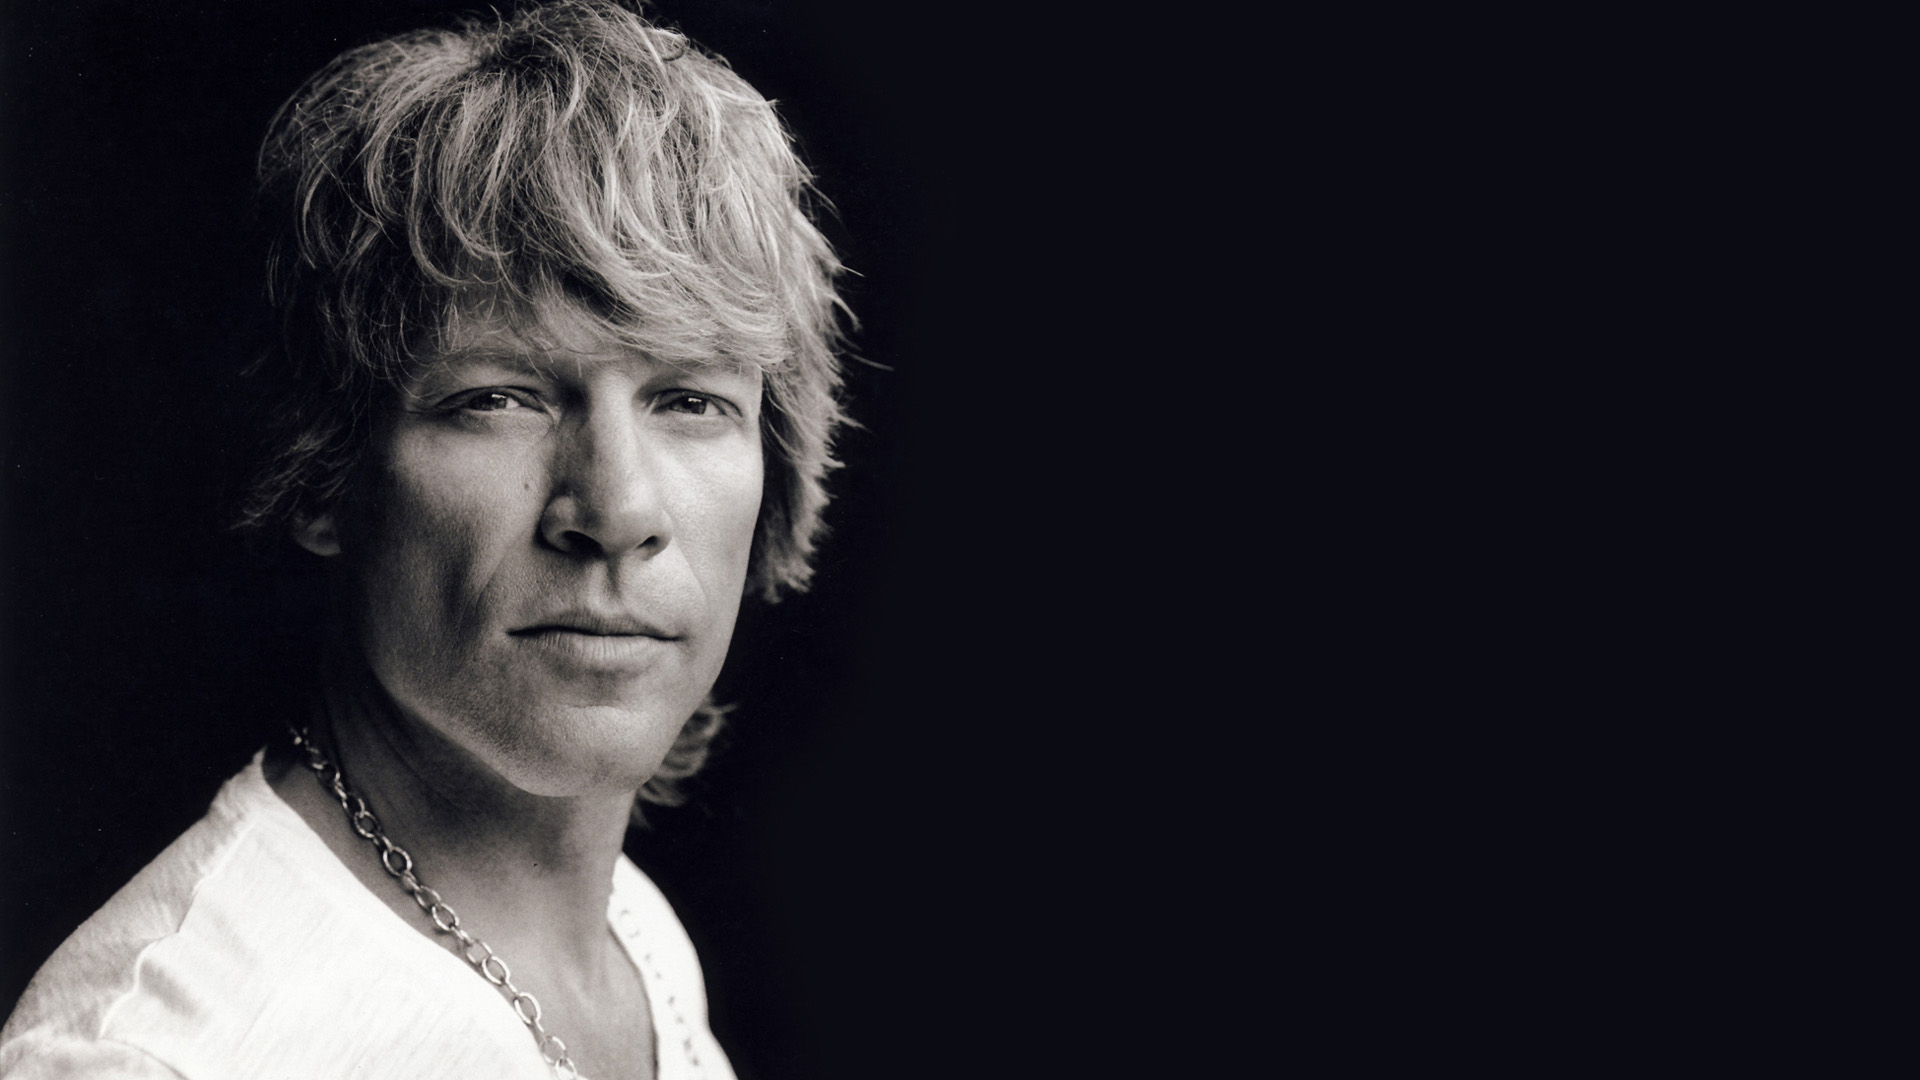 Jon Bon Jovi Wallpapers